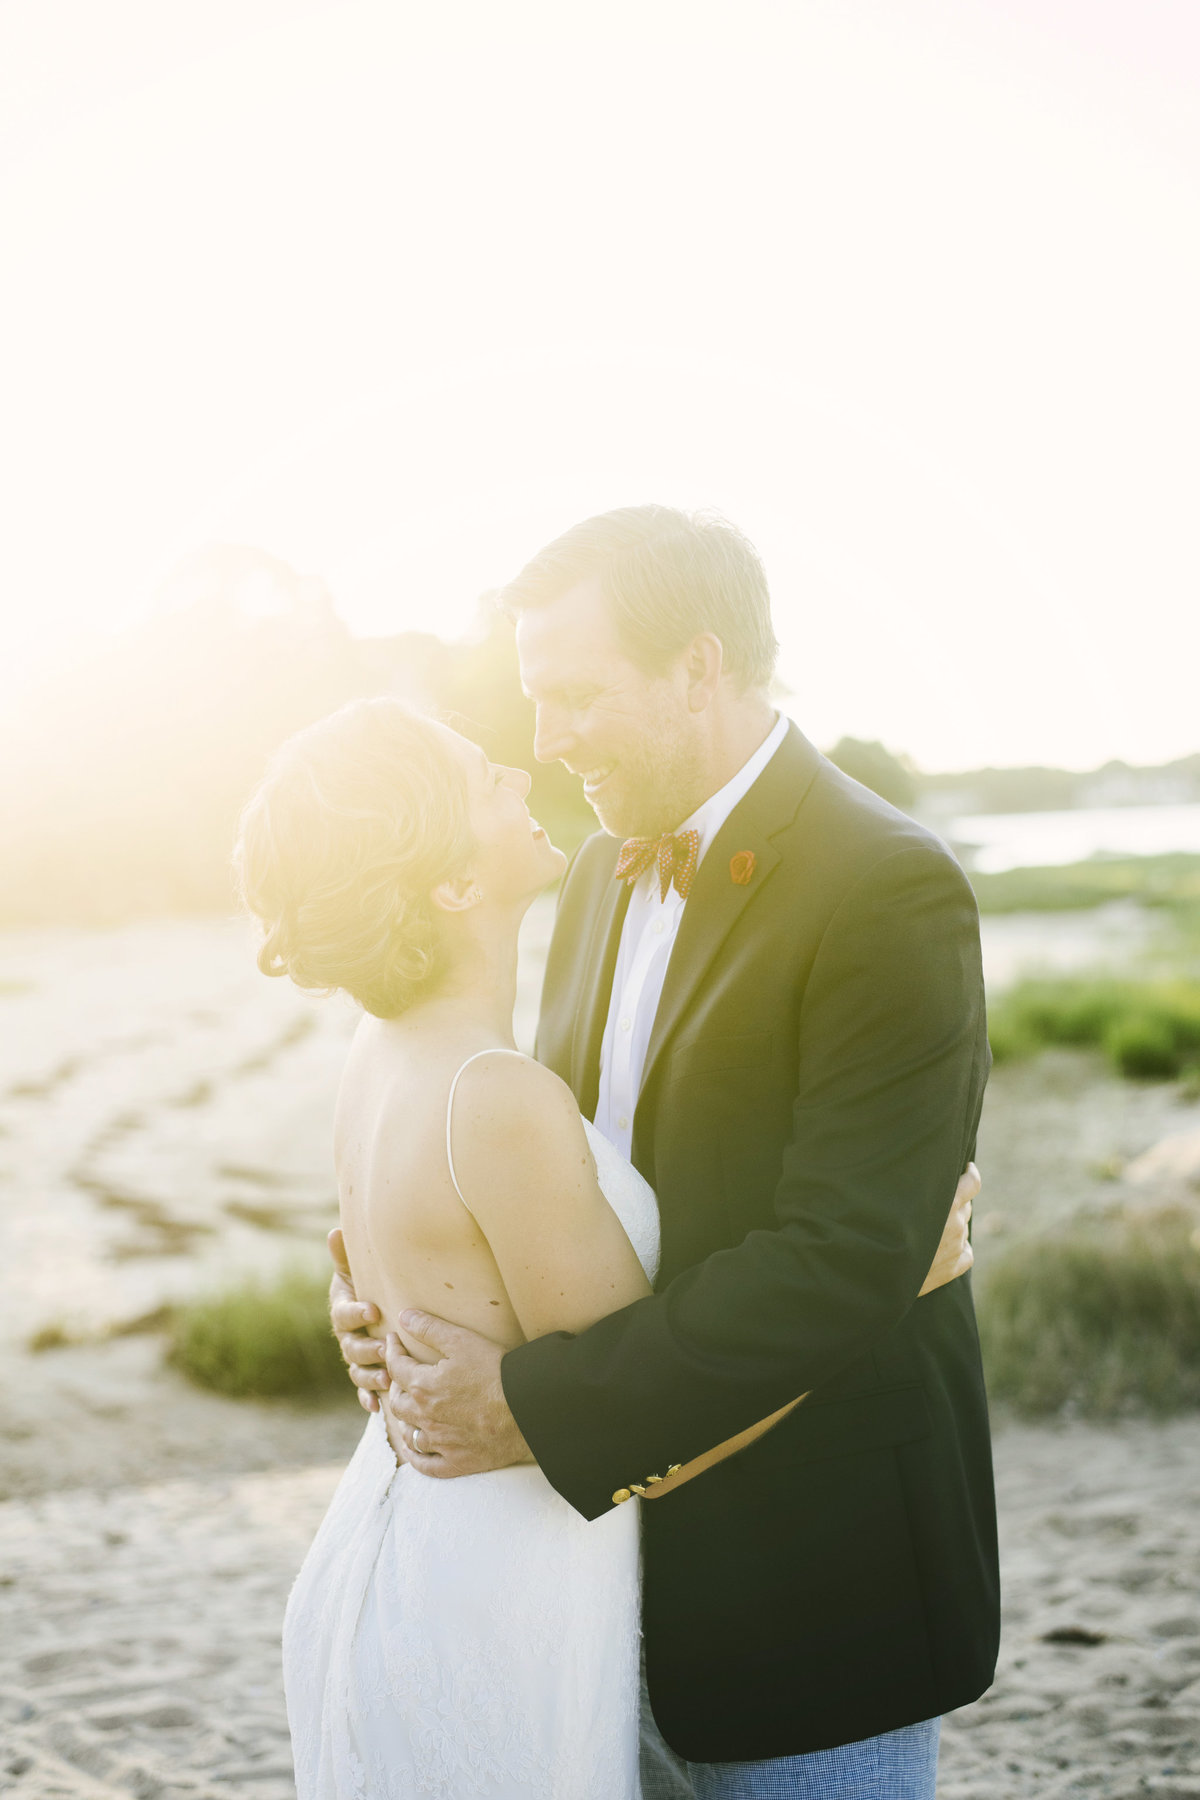 Monica-Relyea-Events-Alicia-King-Photography-Cape-Cod-Anniversary-Shoot-Wedding-Beach-Chatham-Nautical-Summer-Massachusetts83